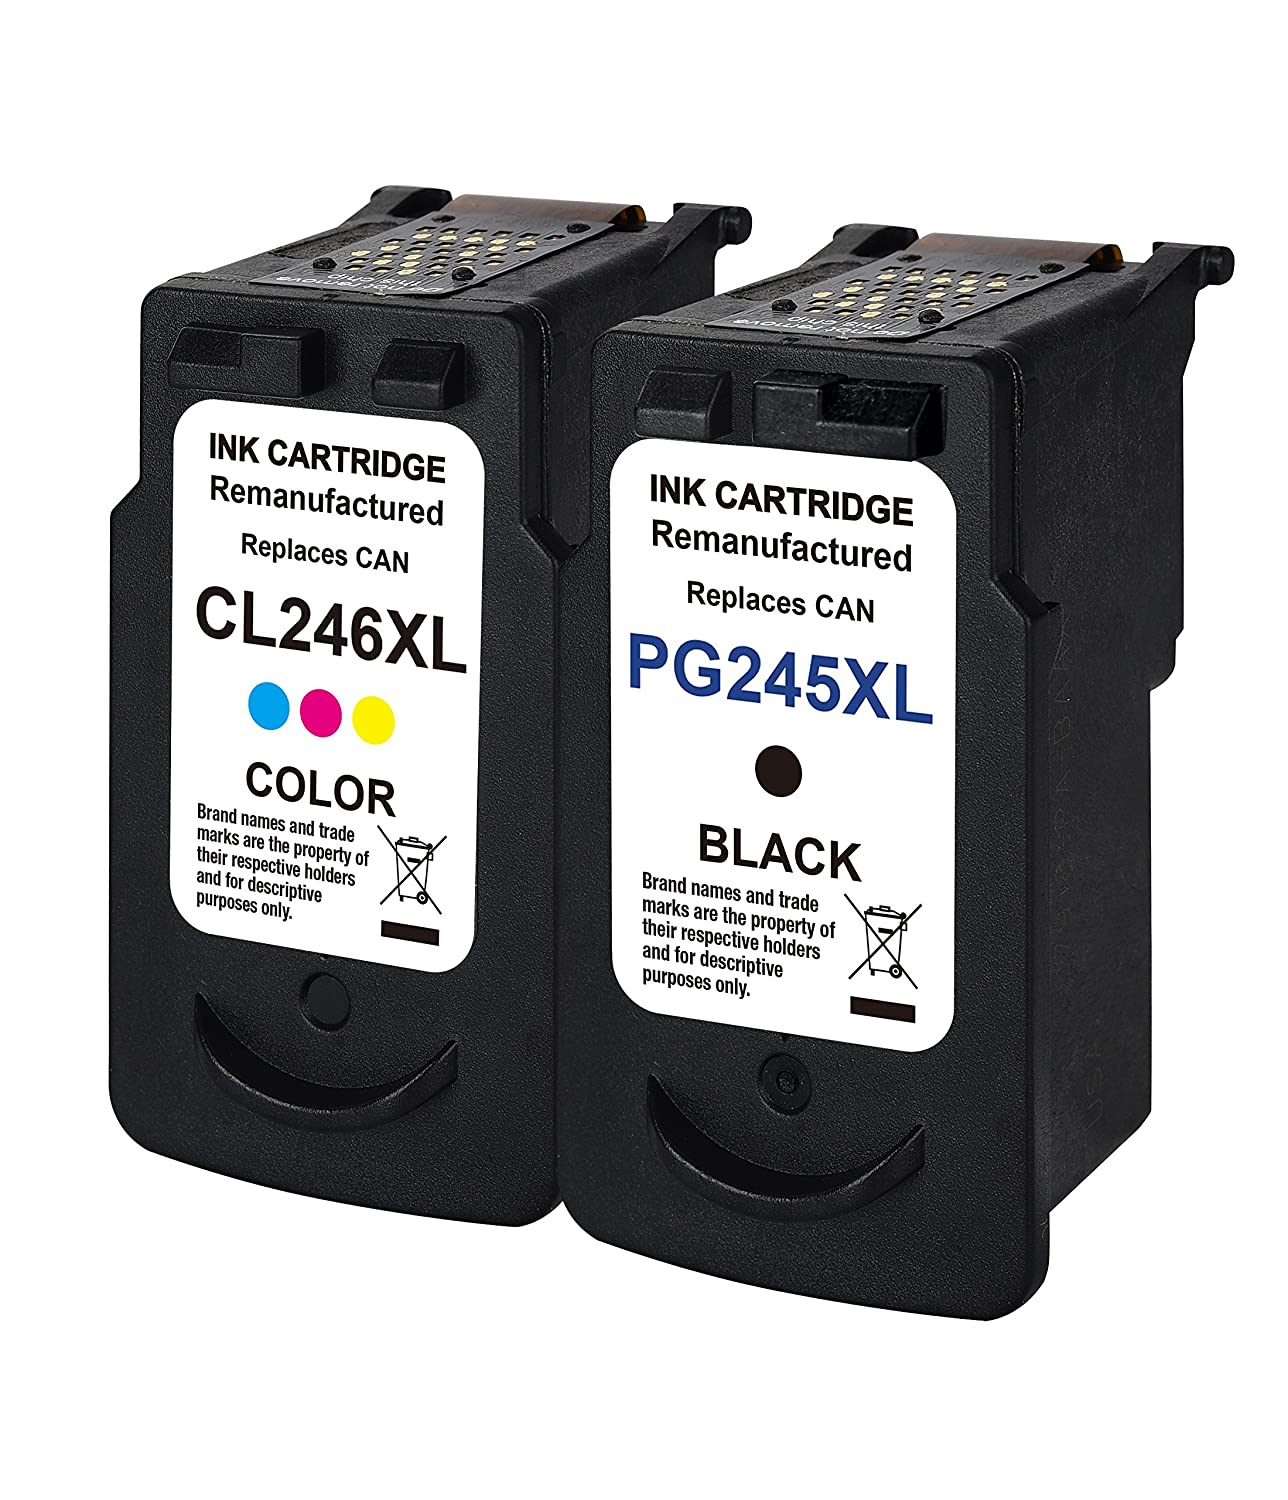 1 combo Remanufactured Ink Cartridge Replacement For Canon PG 245XL & CL 246XL 245 XL 246 XL (1Black 1Color) With Ink Level Indicator Used In PIXMA iP2820 MG2420 MG2520 2920 MG2922 MG2924 Printer